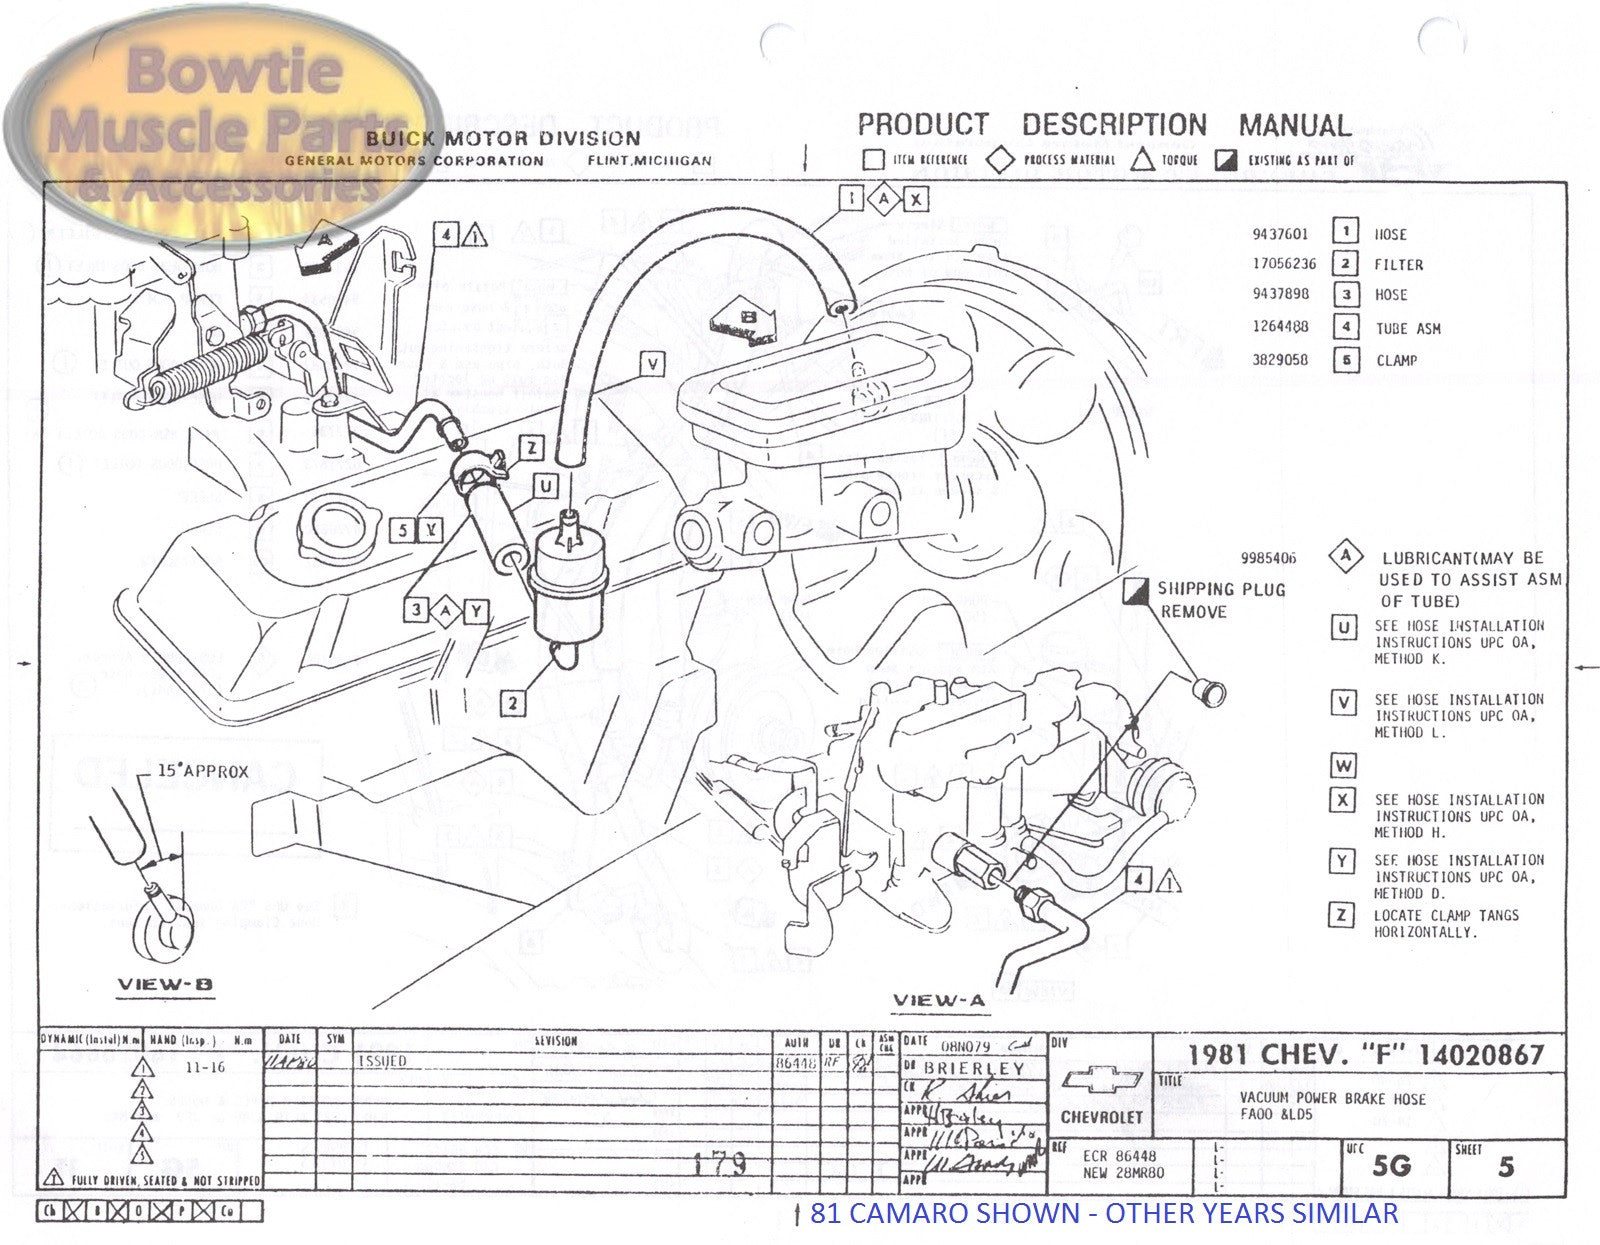 1982 82 Camaro Factory Assembly Manual Z28 | BowtieMuscleParts